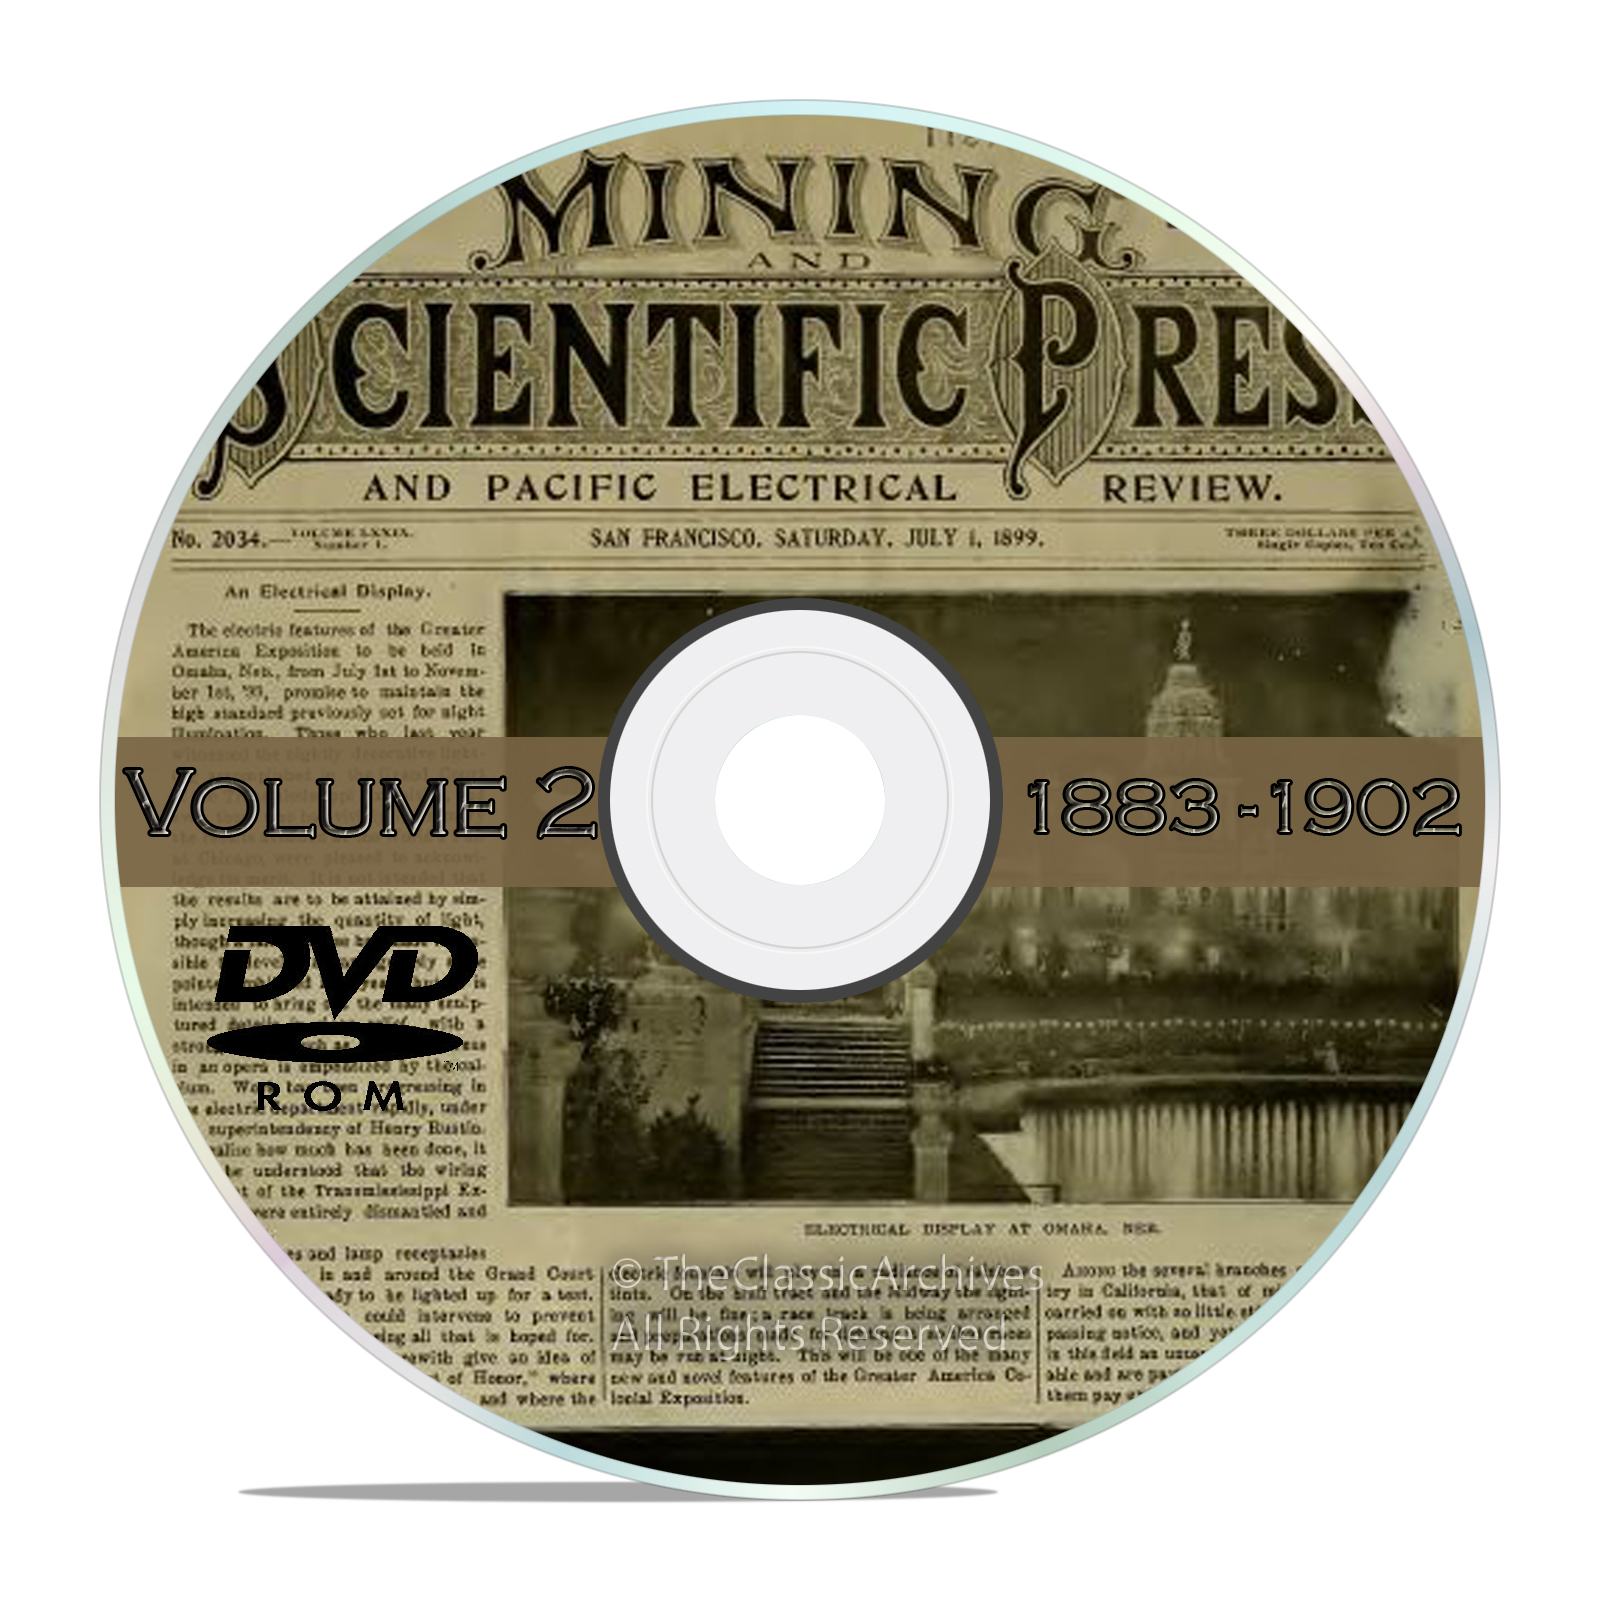 Vintage Mining and Scientific Press, 1883 - 1902, 1000 Back Issues Vol2 DVD